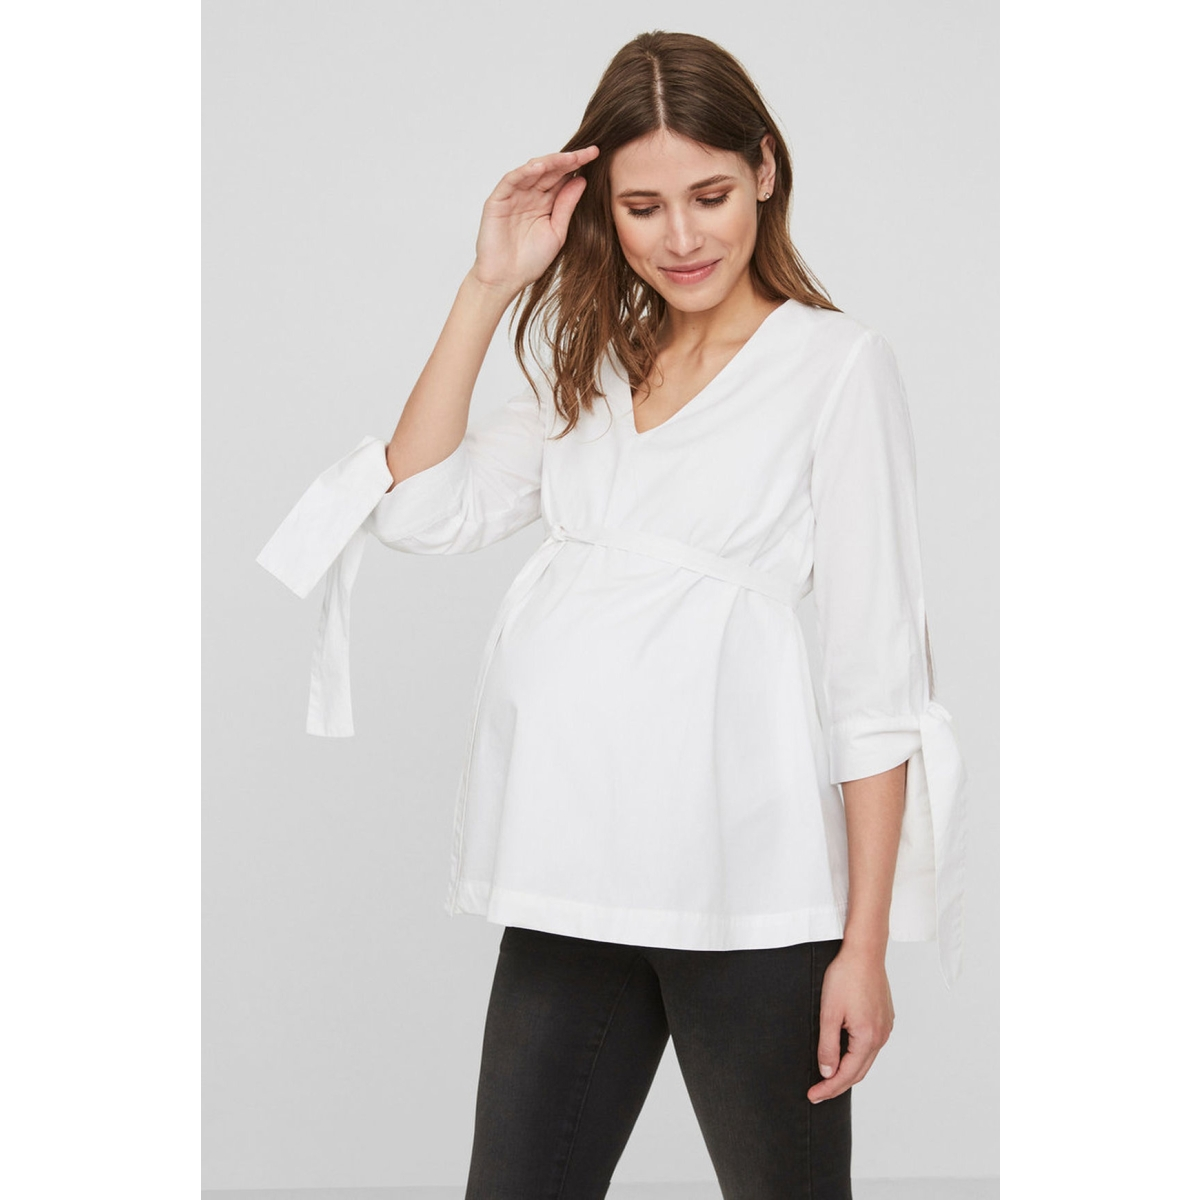 mlkrista 3/4 woven top n. 20008232 mama-licious positie blouse bright white